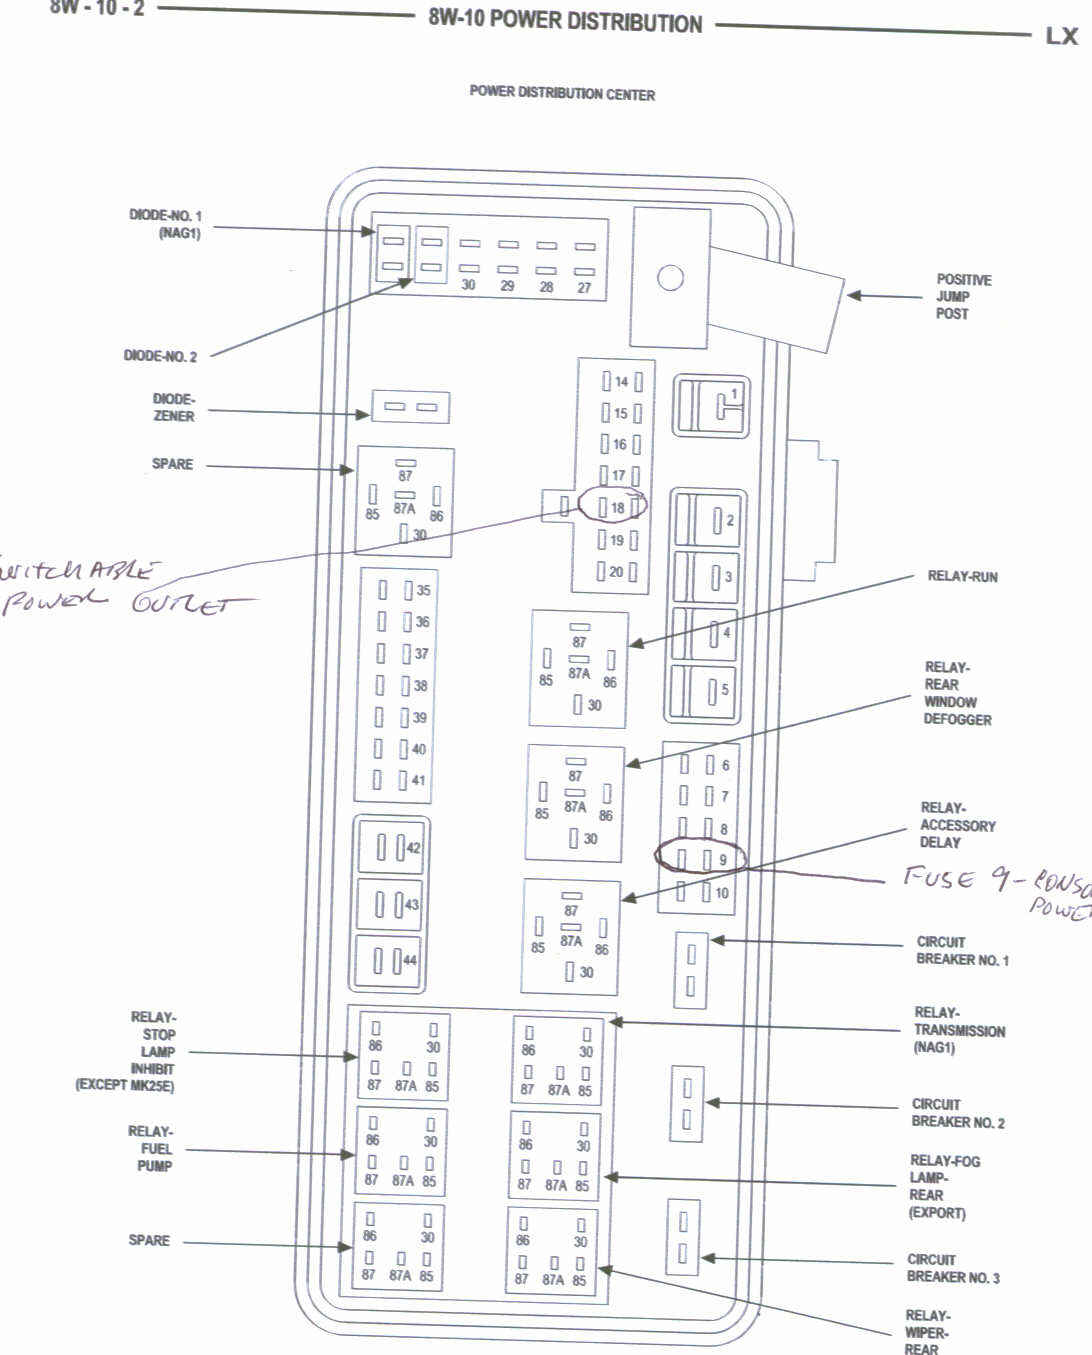 WRG-6981] 05 Jaguar S Type Fuse Box Diagram Penger on